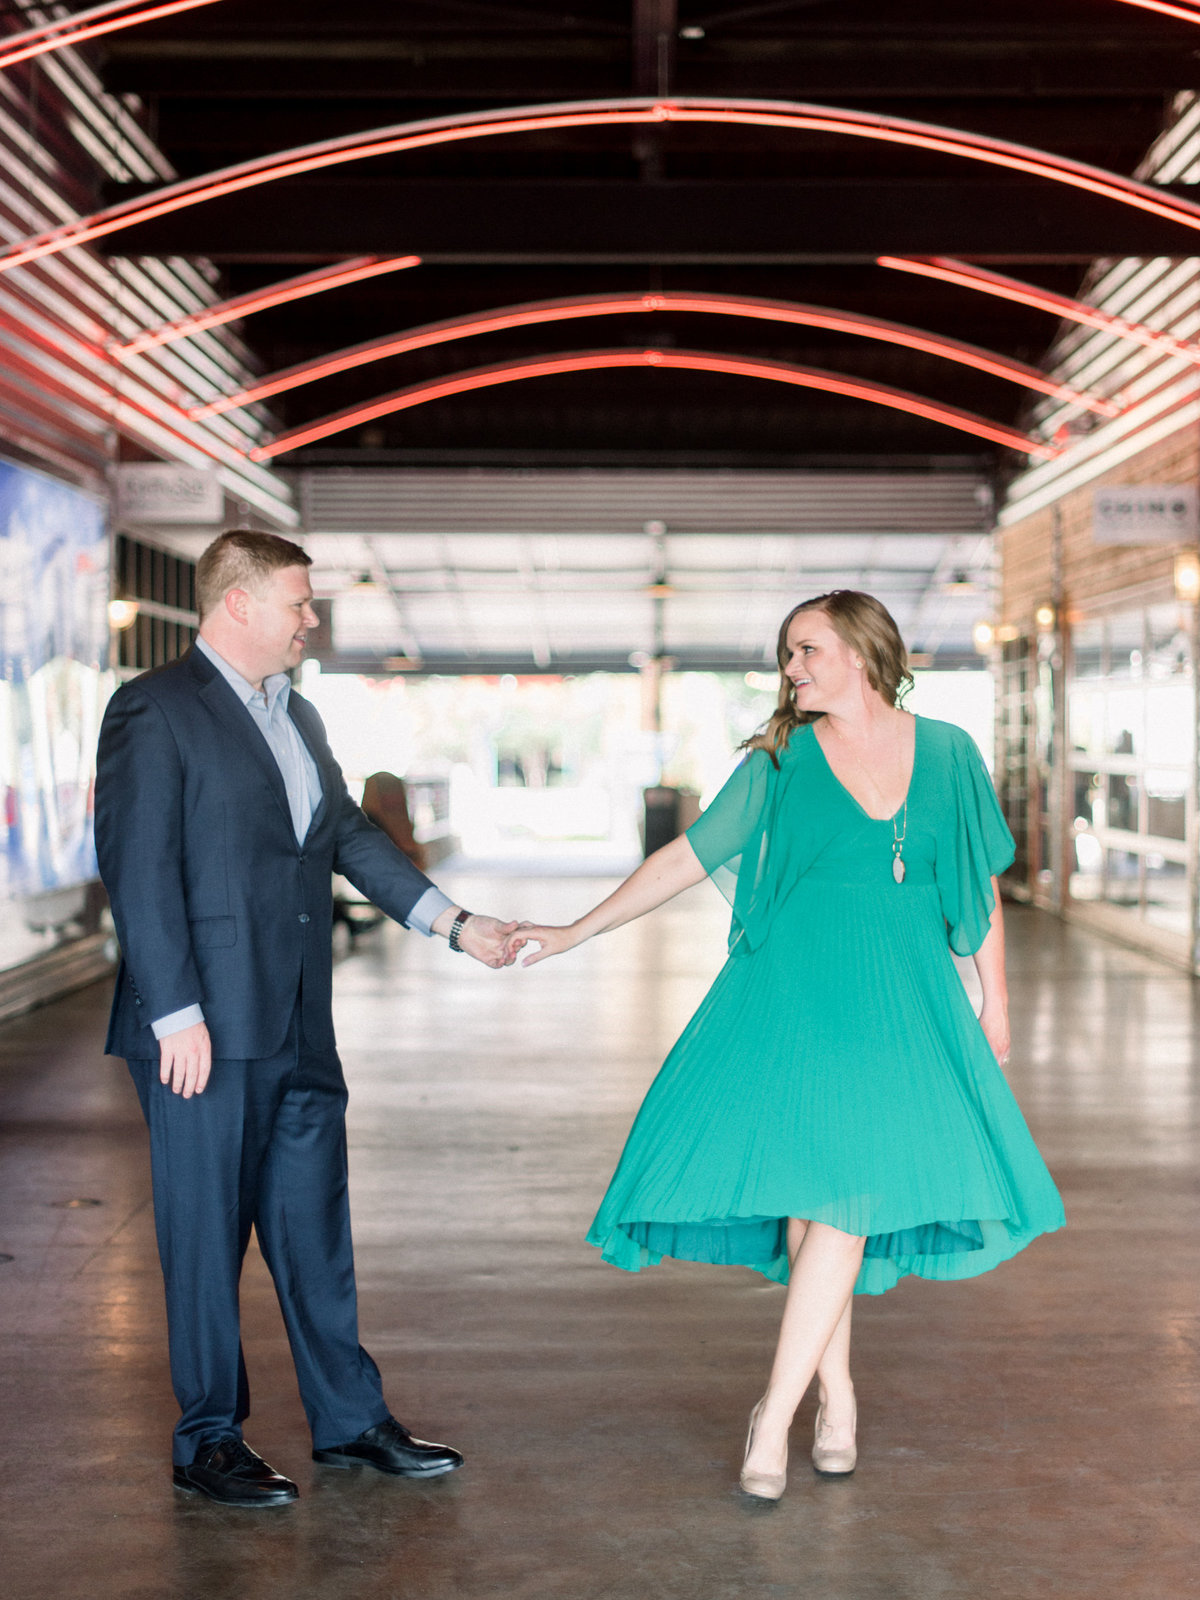 Courtney Hanson Photography - Downtown Dallas Engagement Session-7095